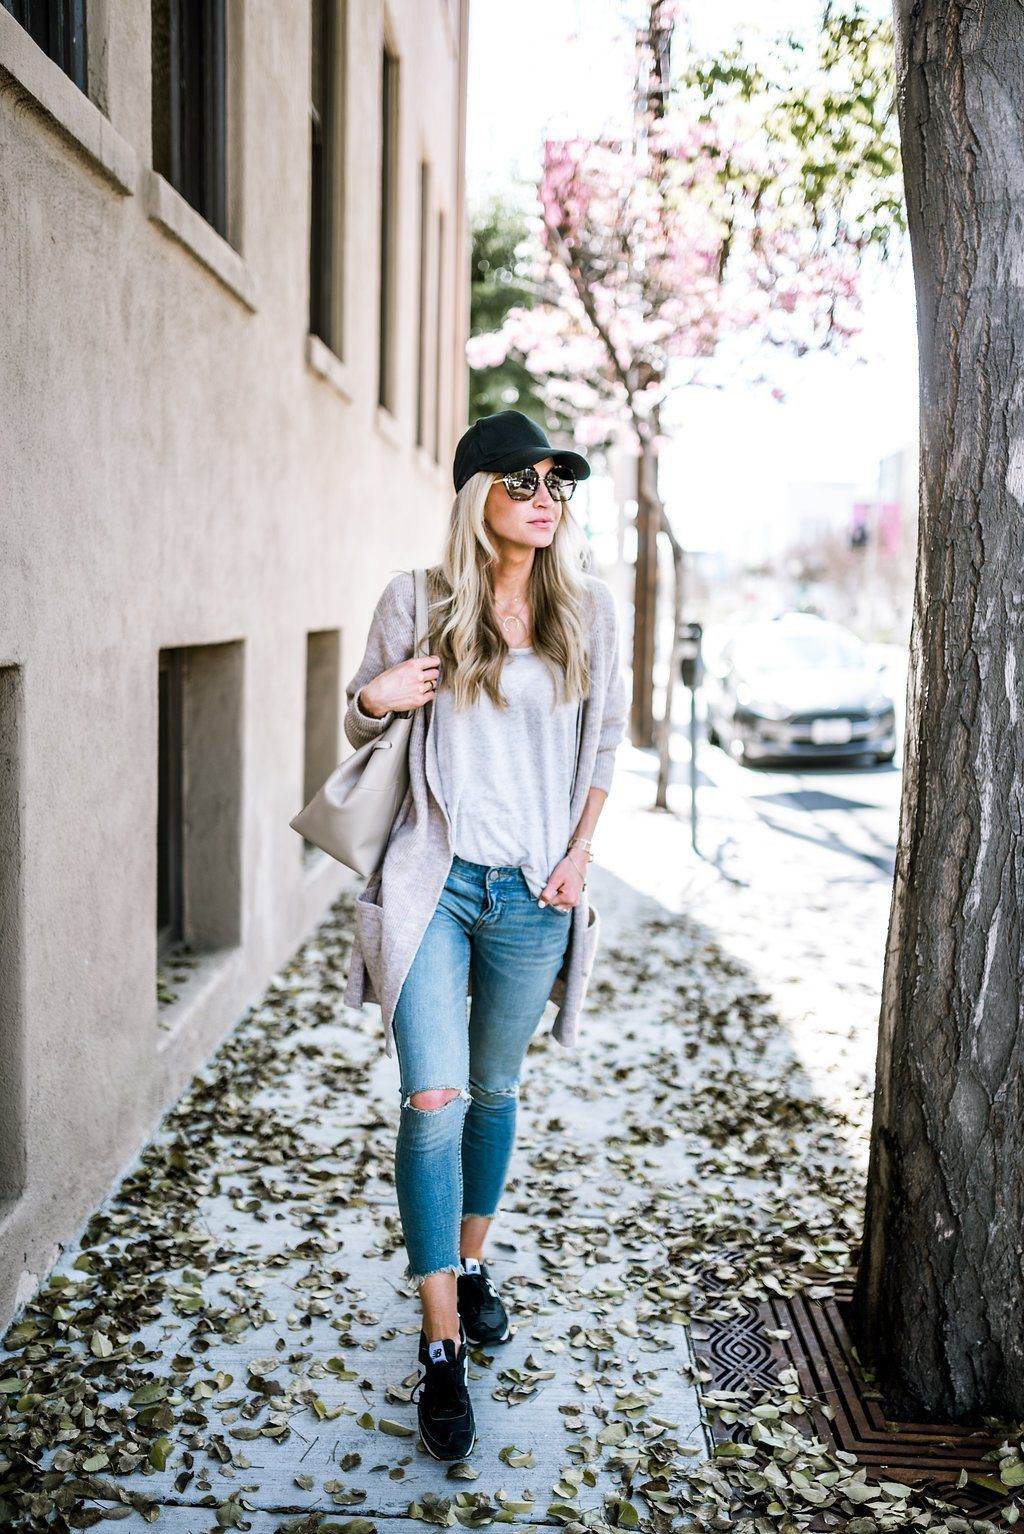 Outfits To Wear With Sneakers, Baseball cap, Jean jacket